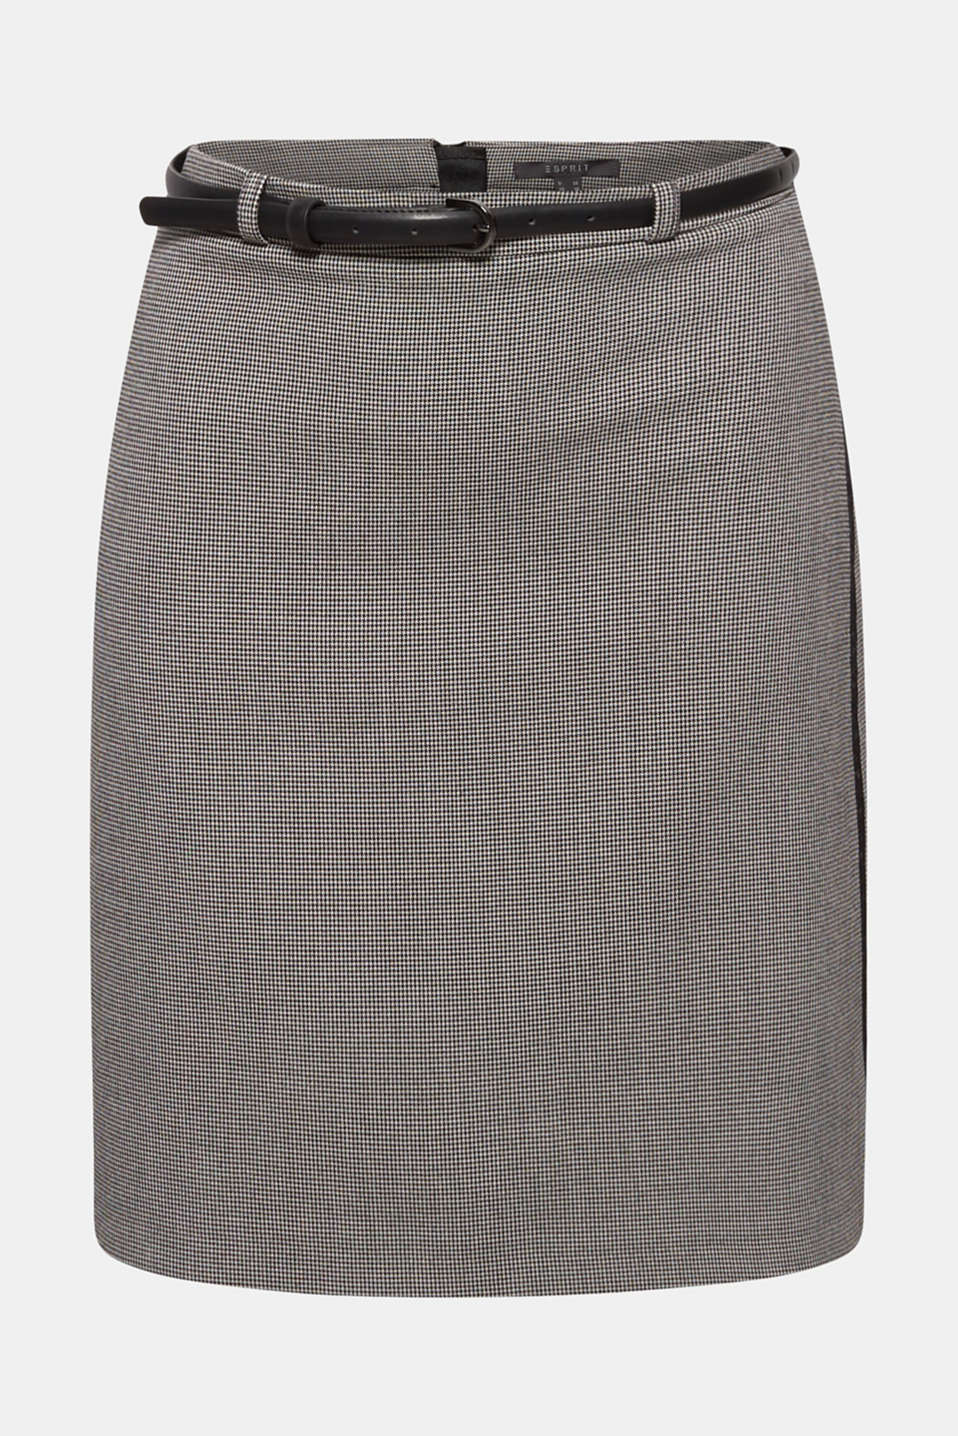 Pencil skirt with houndstooth pattern, BLACK, detail image number 6